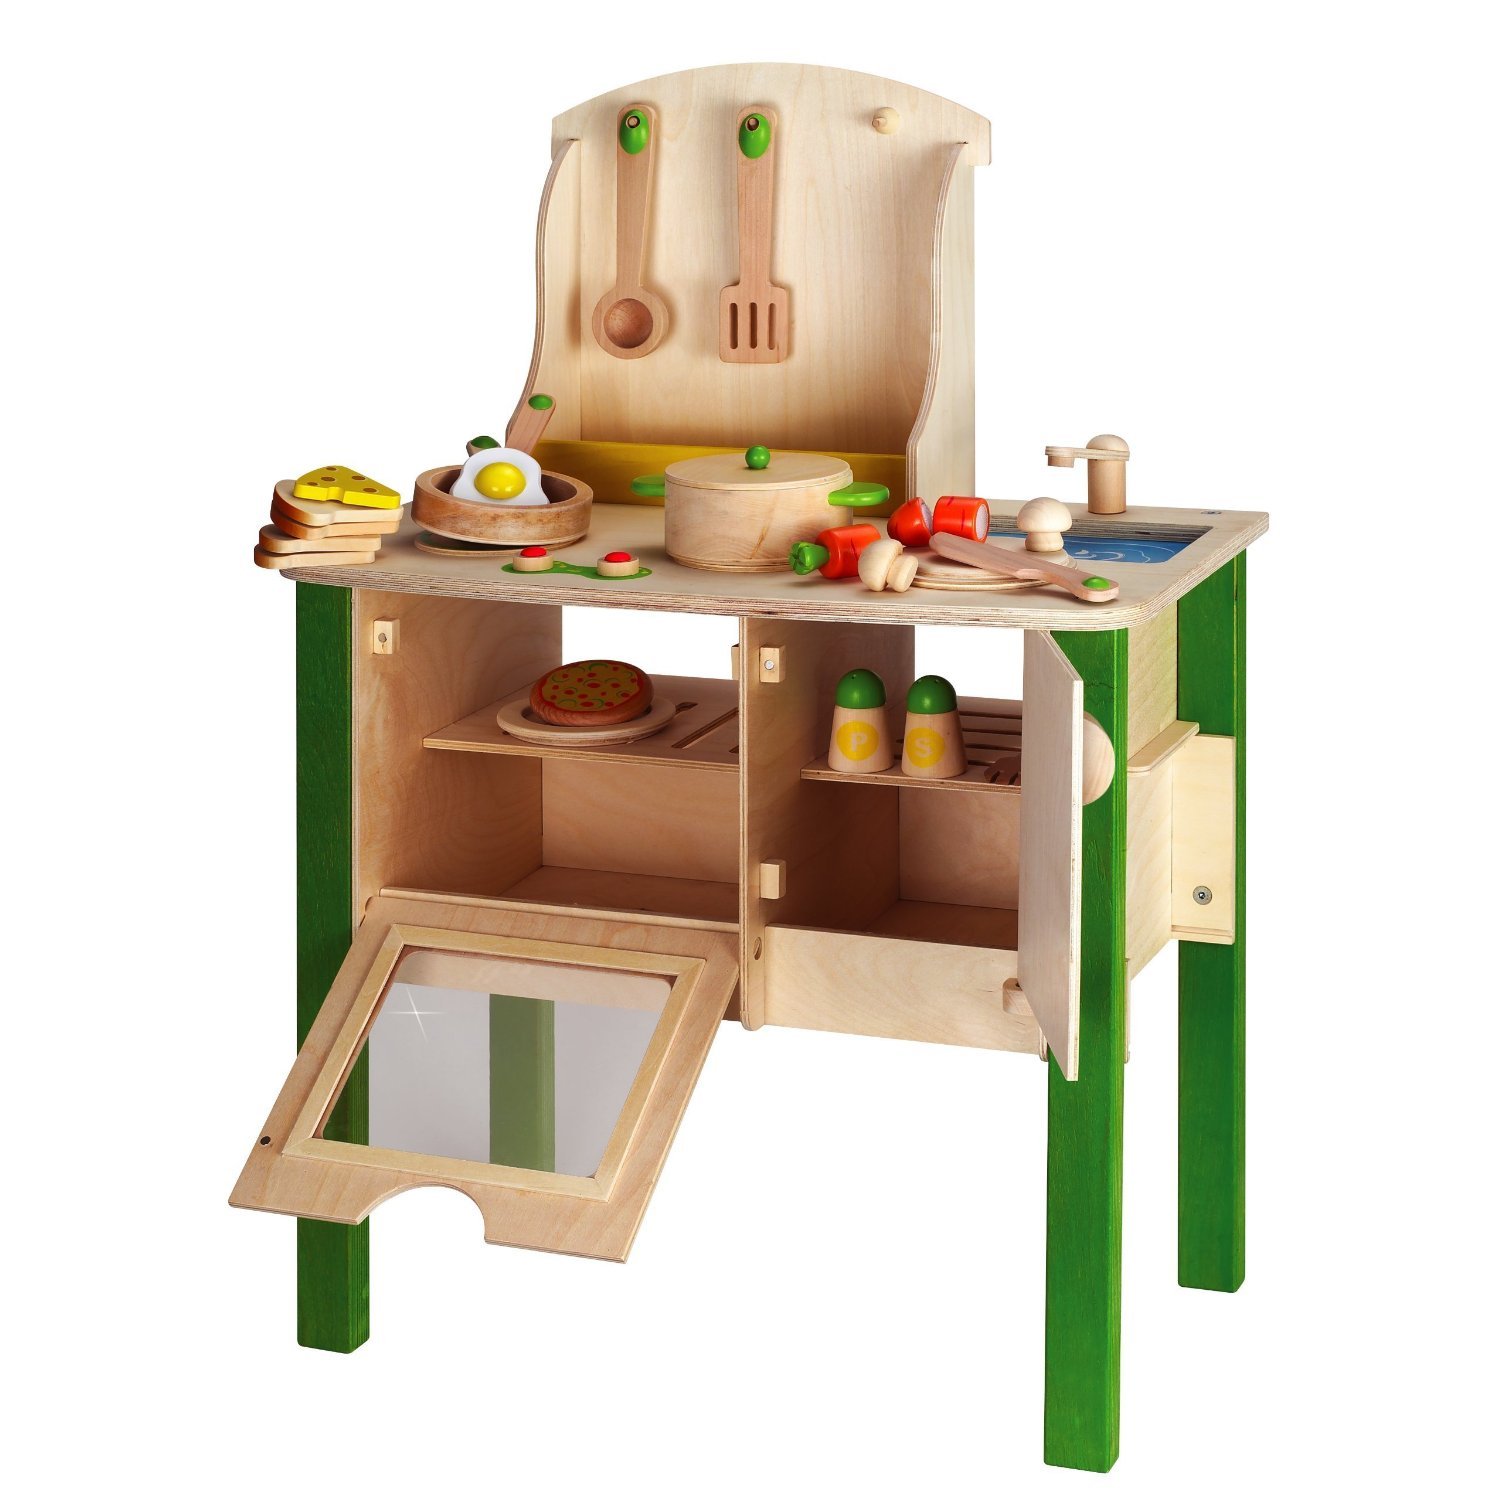 kitchen sets: Wooden Childrens Kitchen Sets, wooden play kitchen on skin care sets cheap, bedroom sets cheap, crib sets cheap, play dough sets cheap,